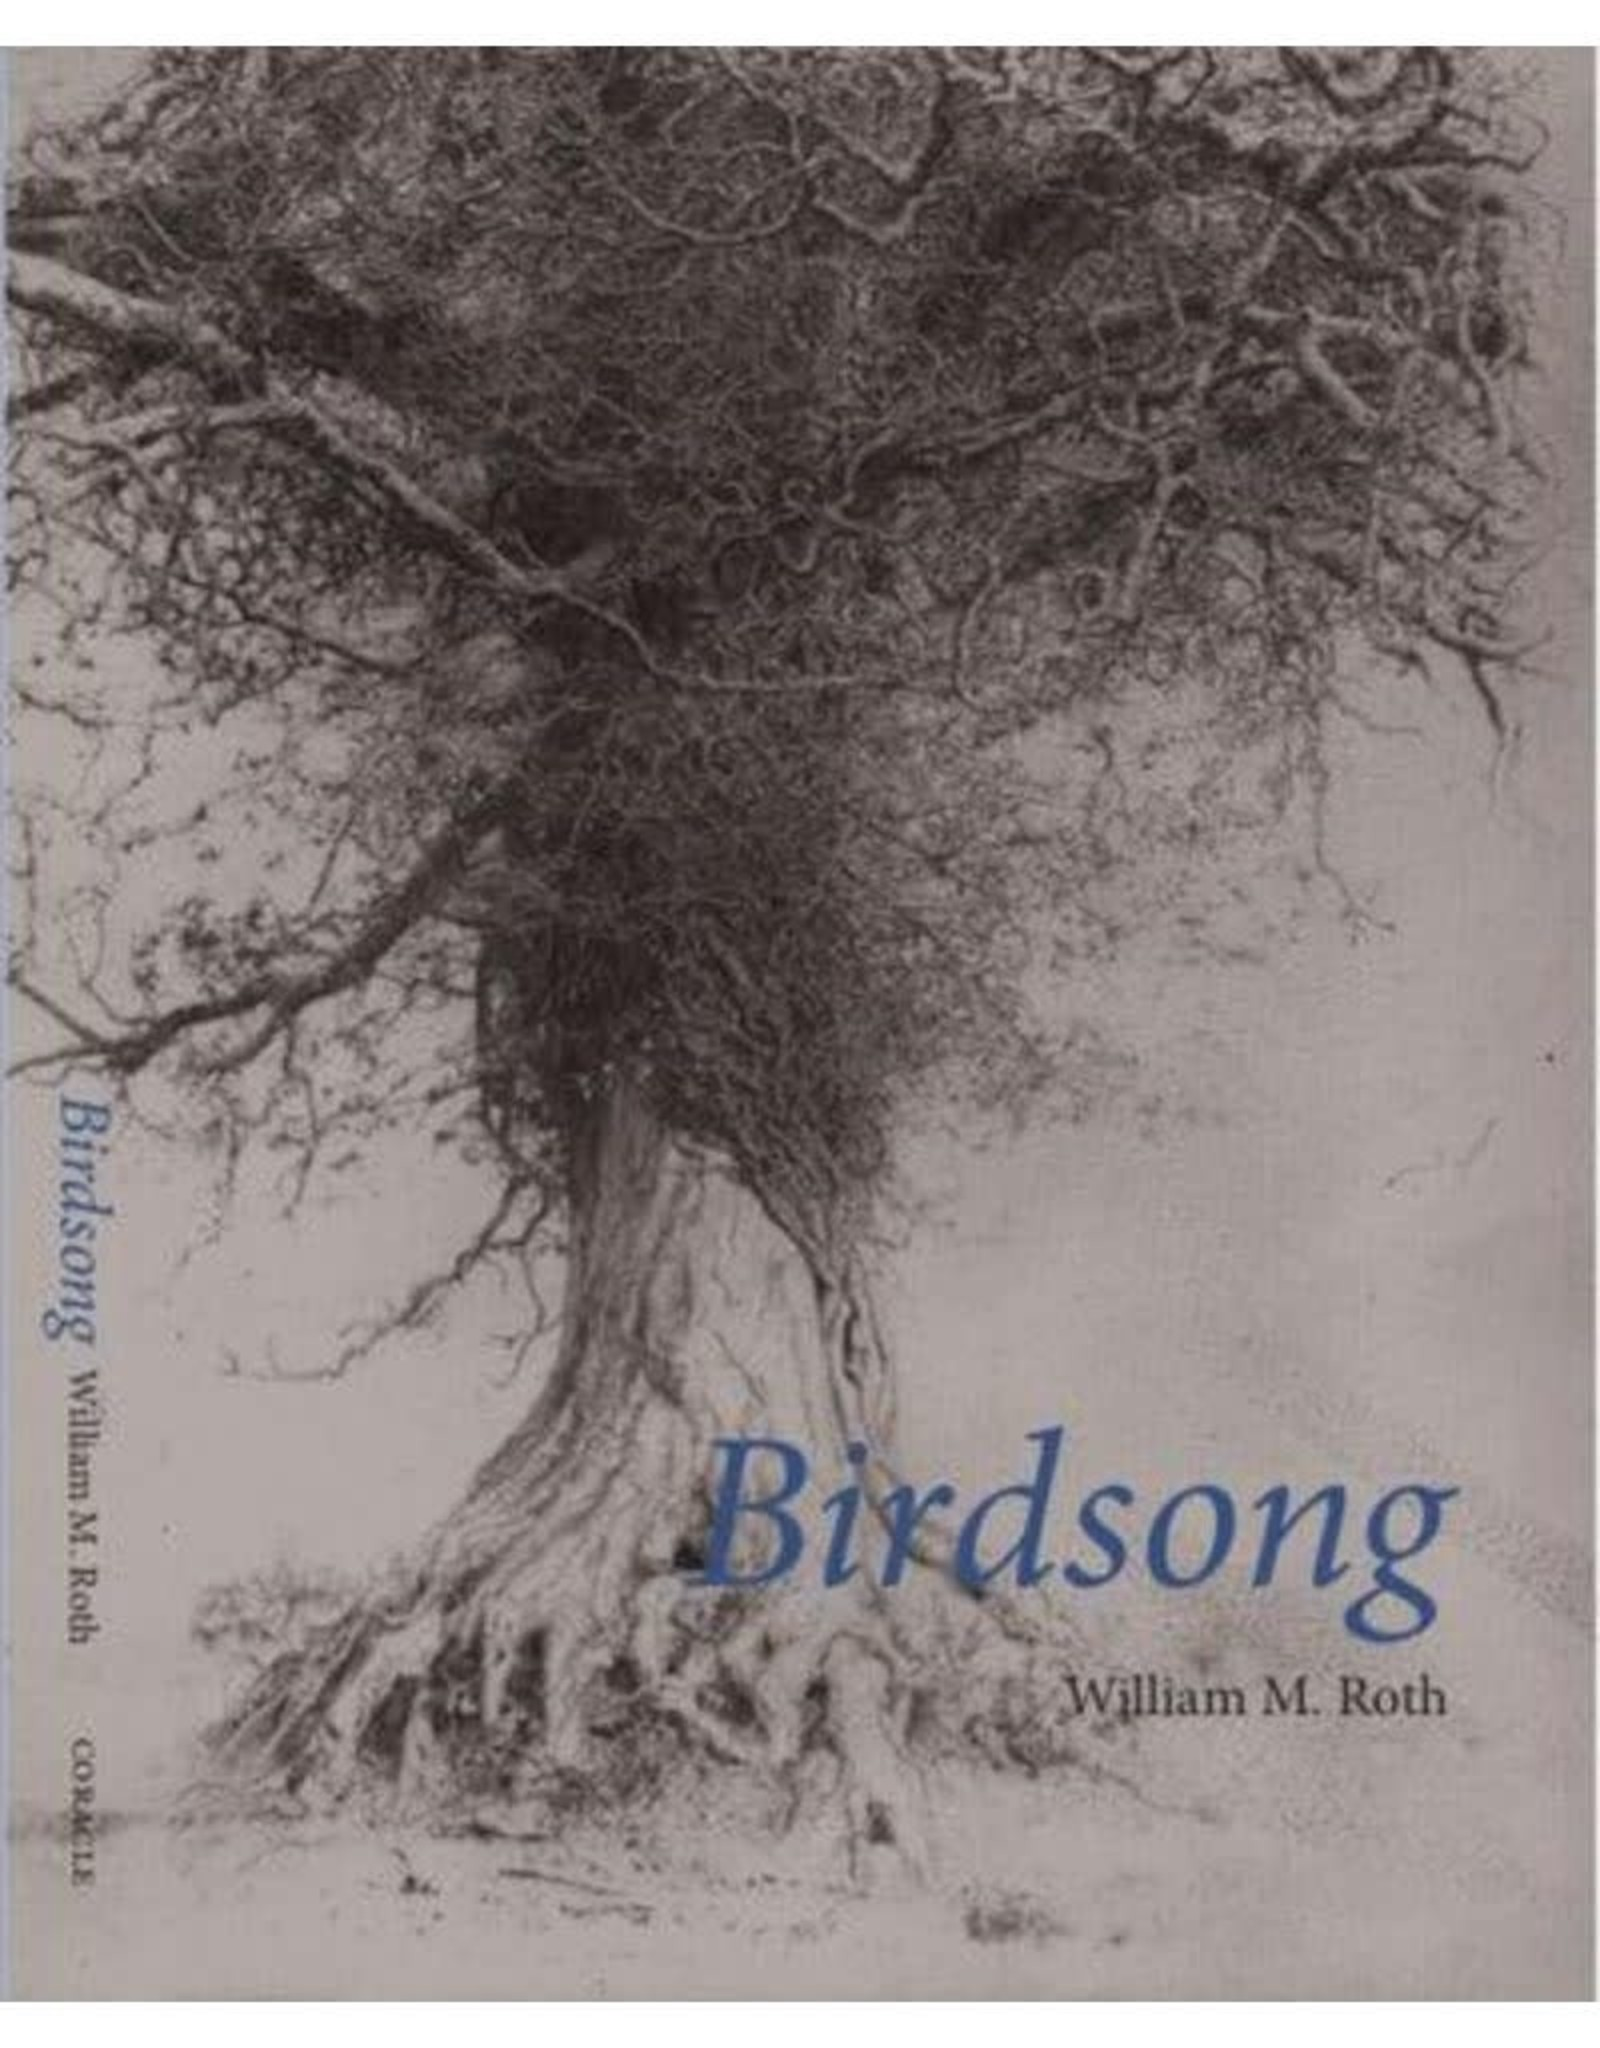 Coracle Birdsong by William M. Roth